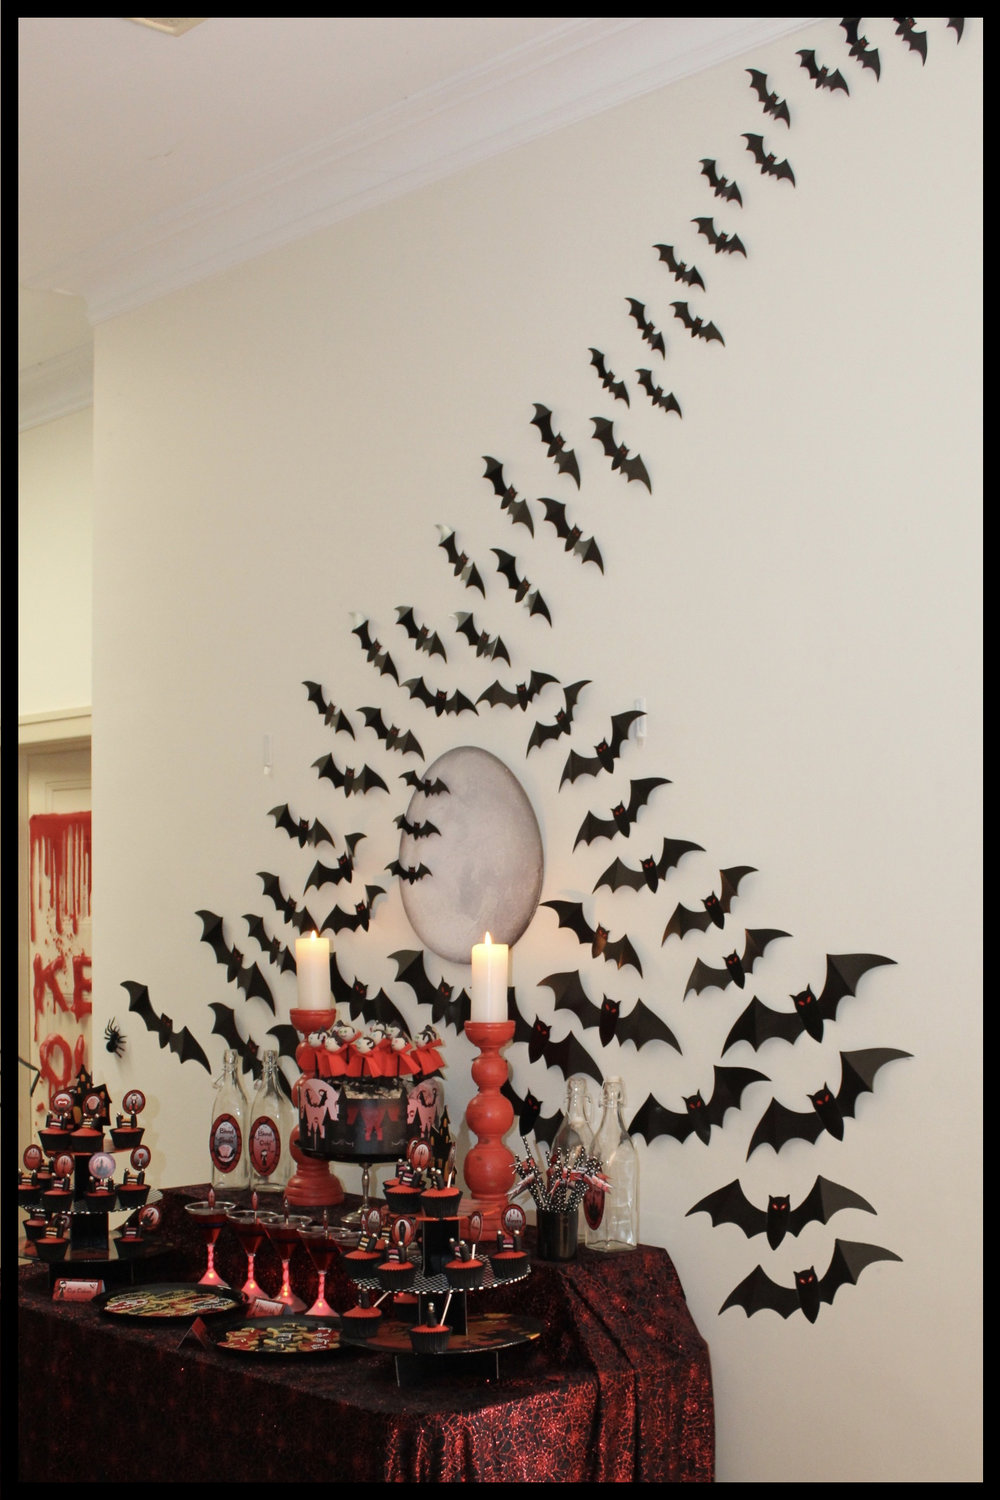 Halloween Dessert Table with Bats - Vampire Party